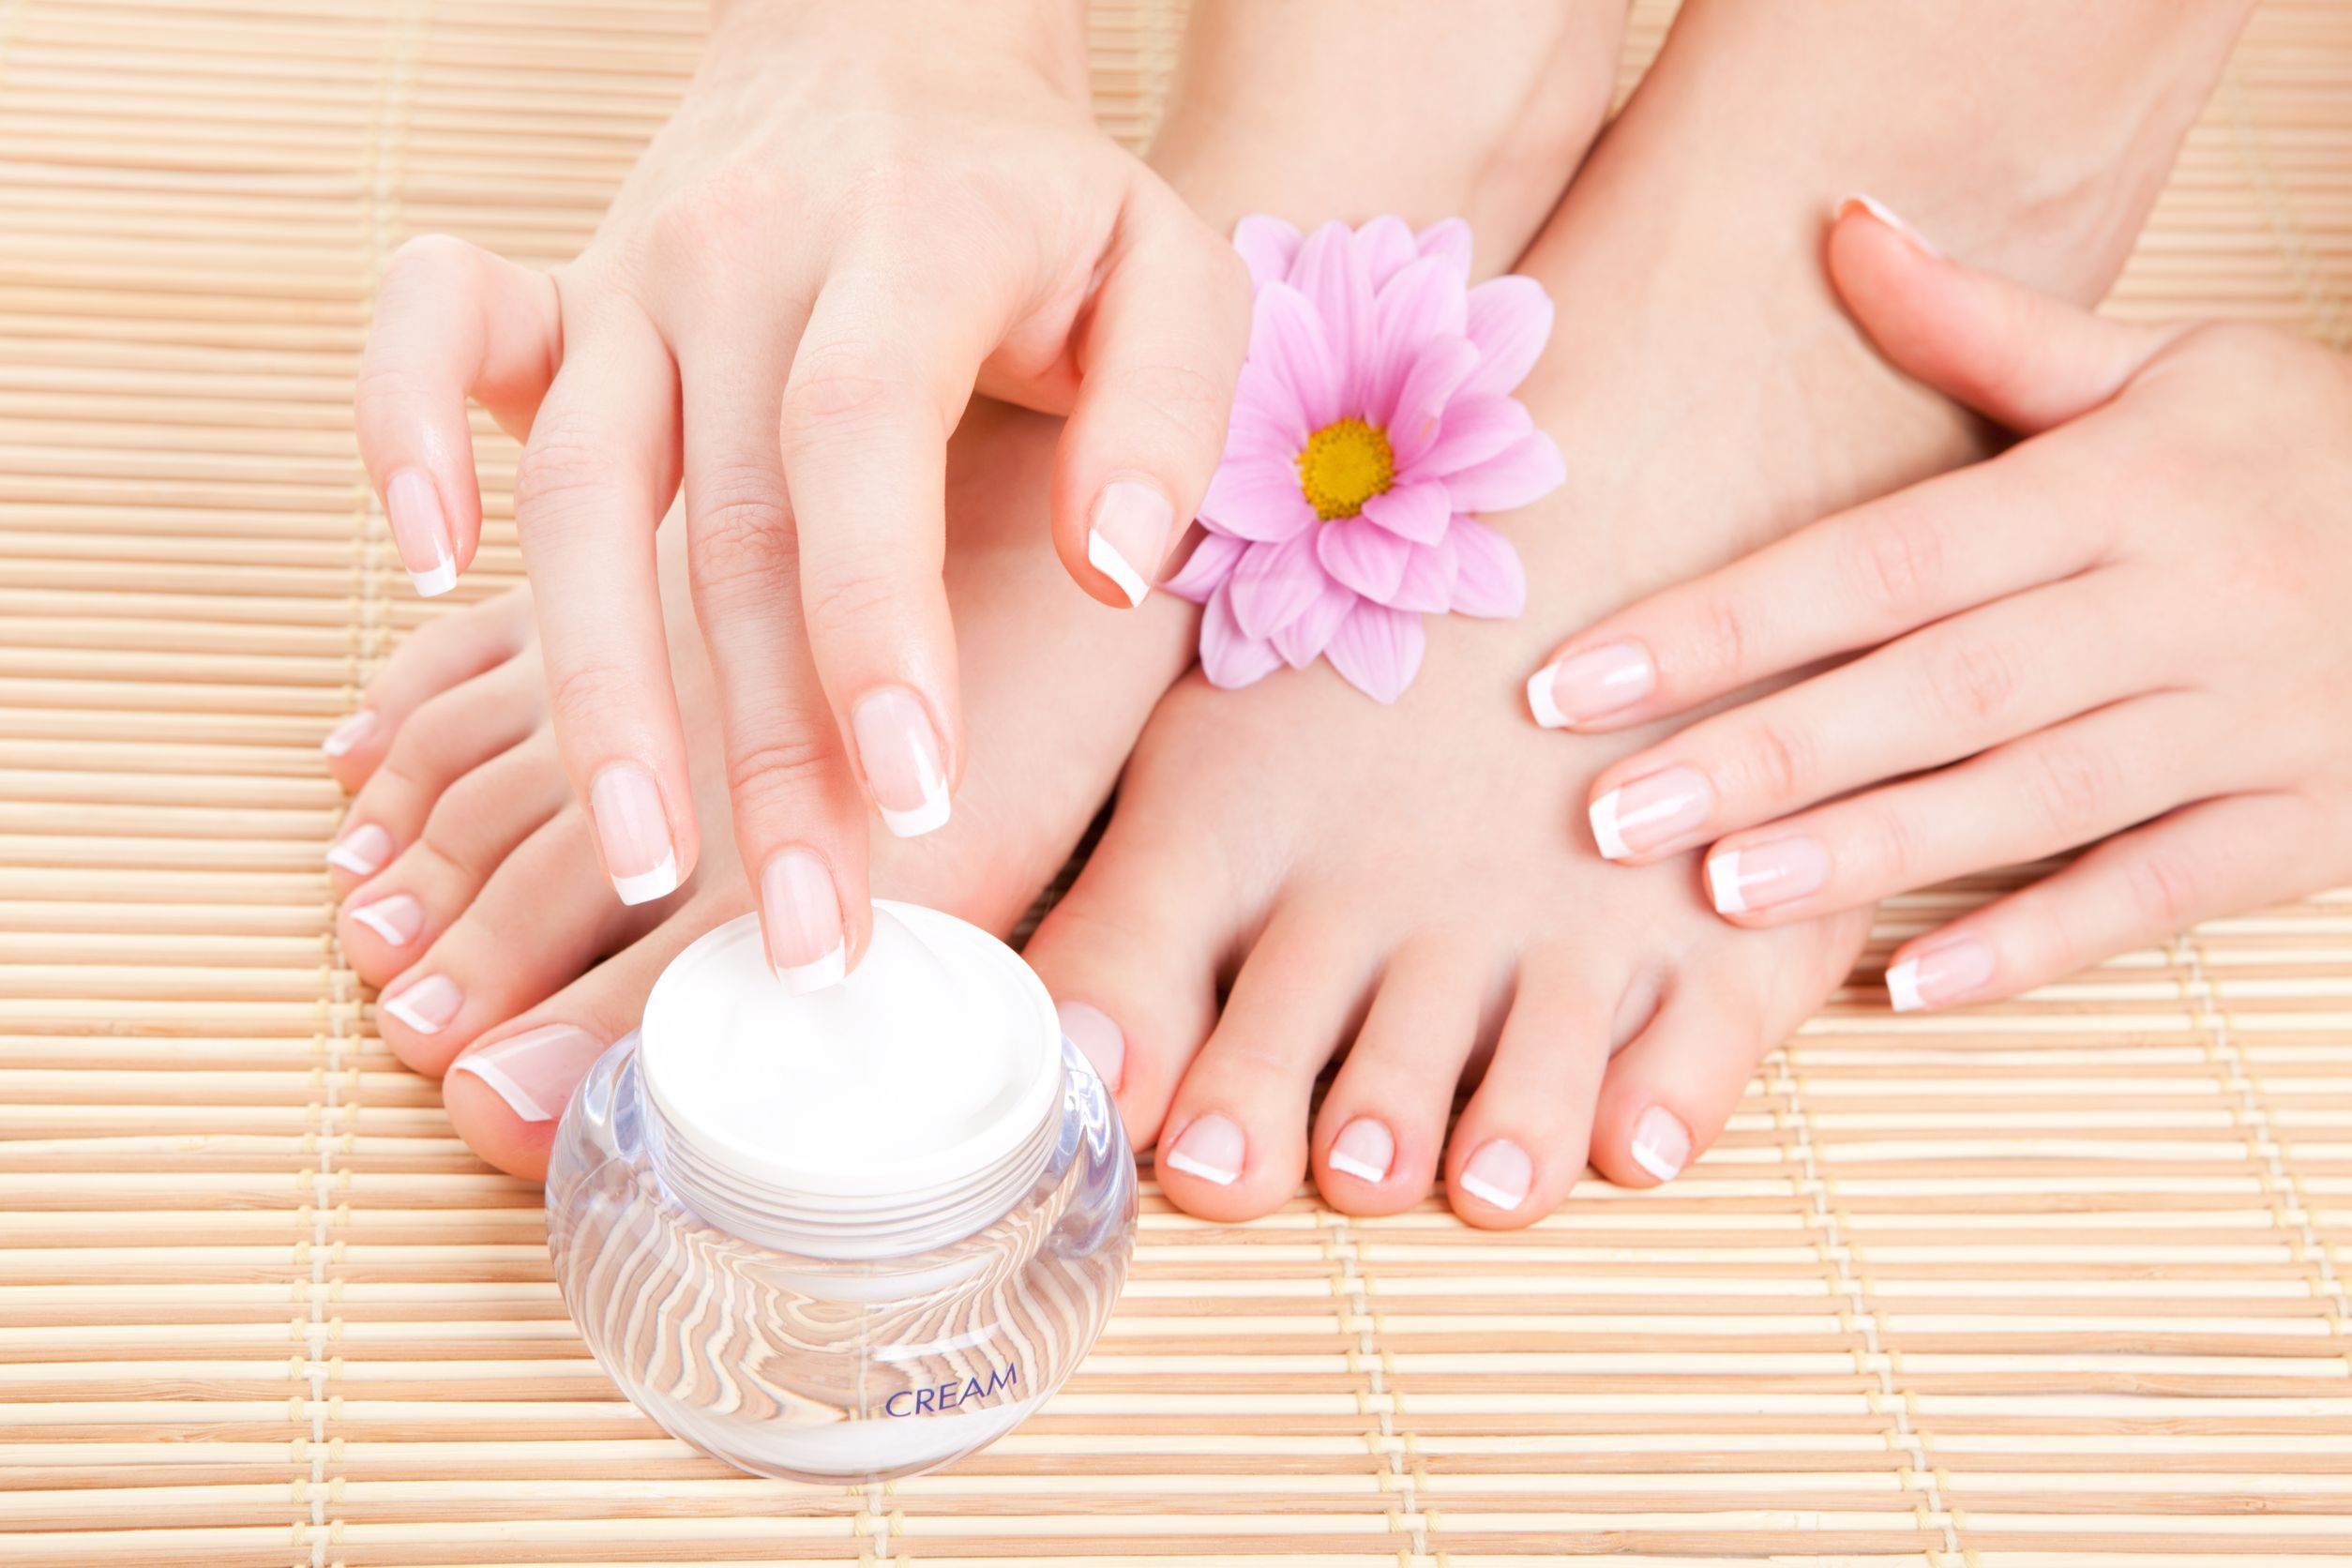 How to treat athlete's foot fast naturally